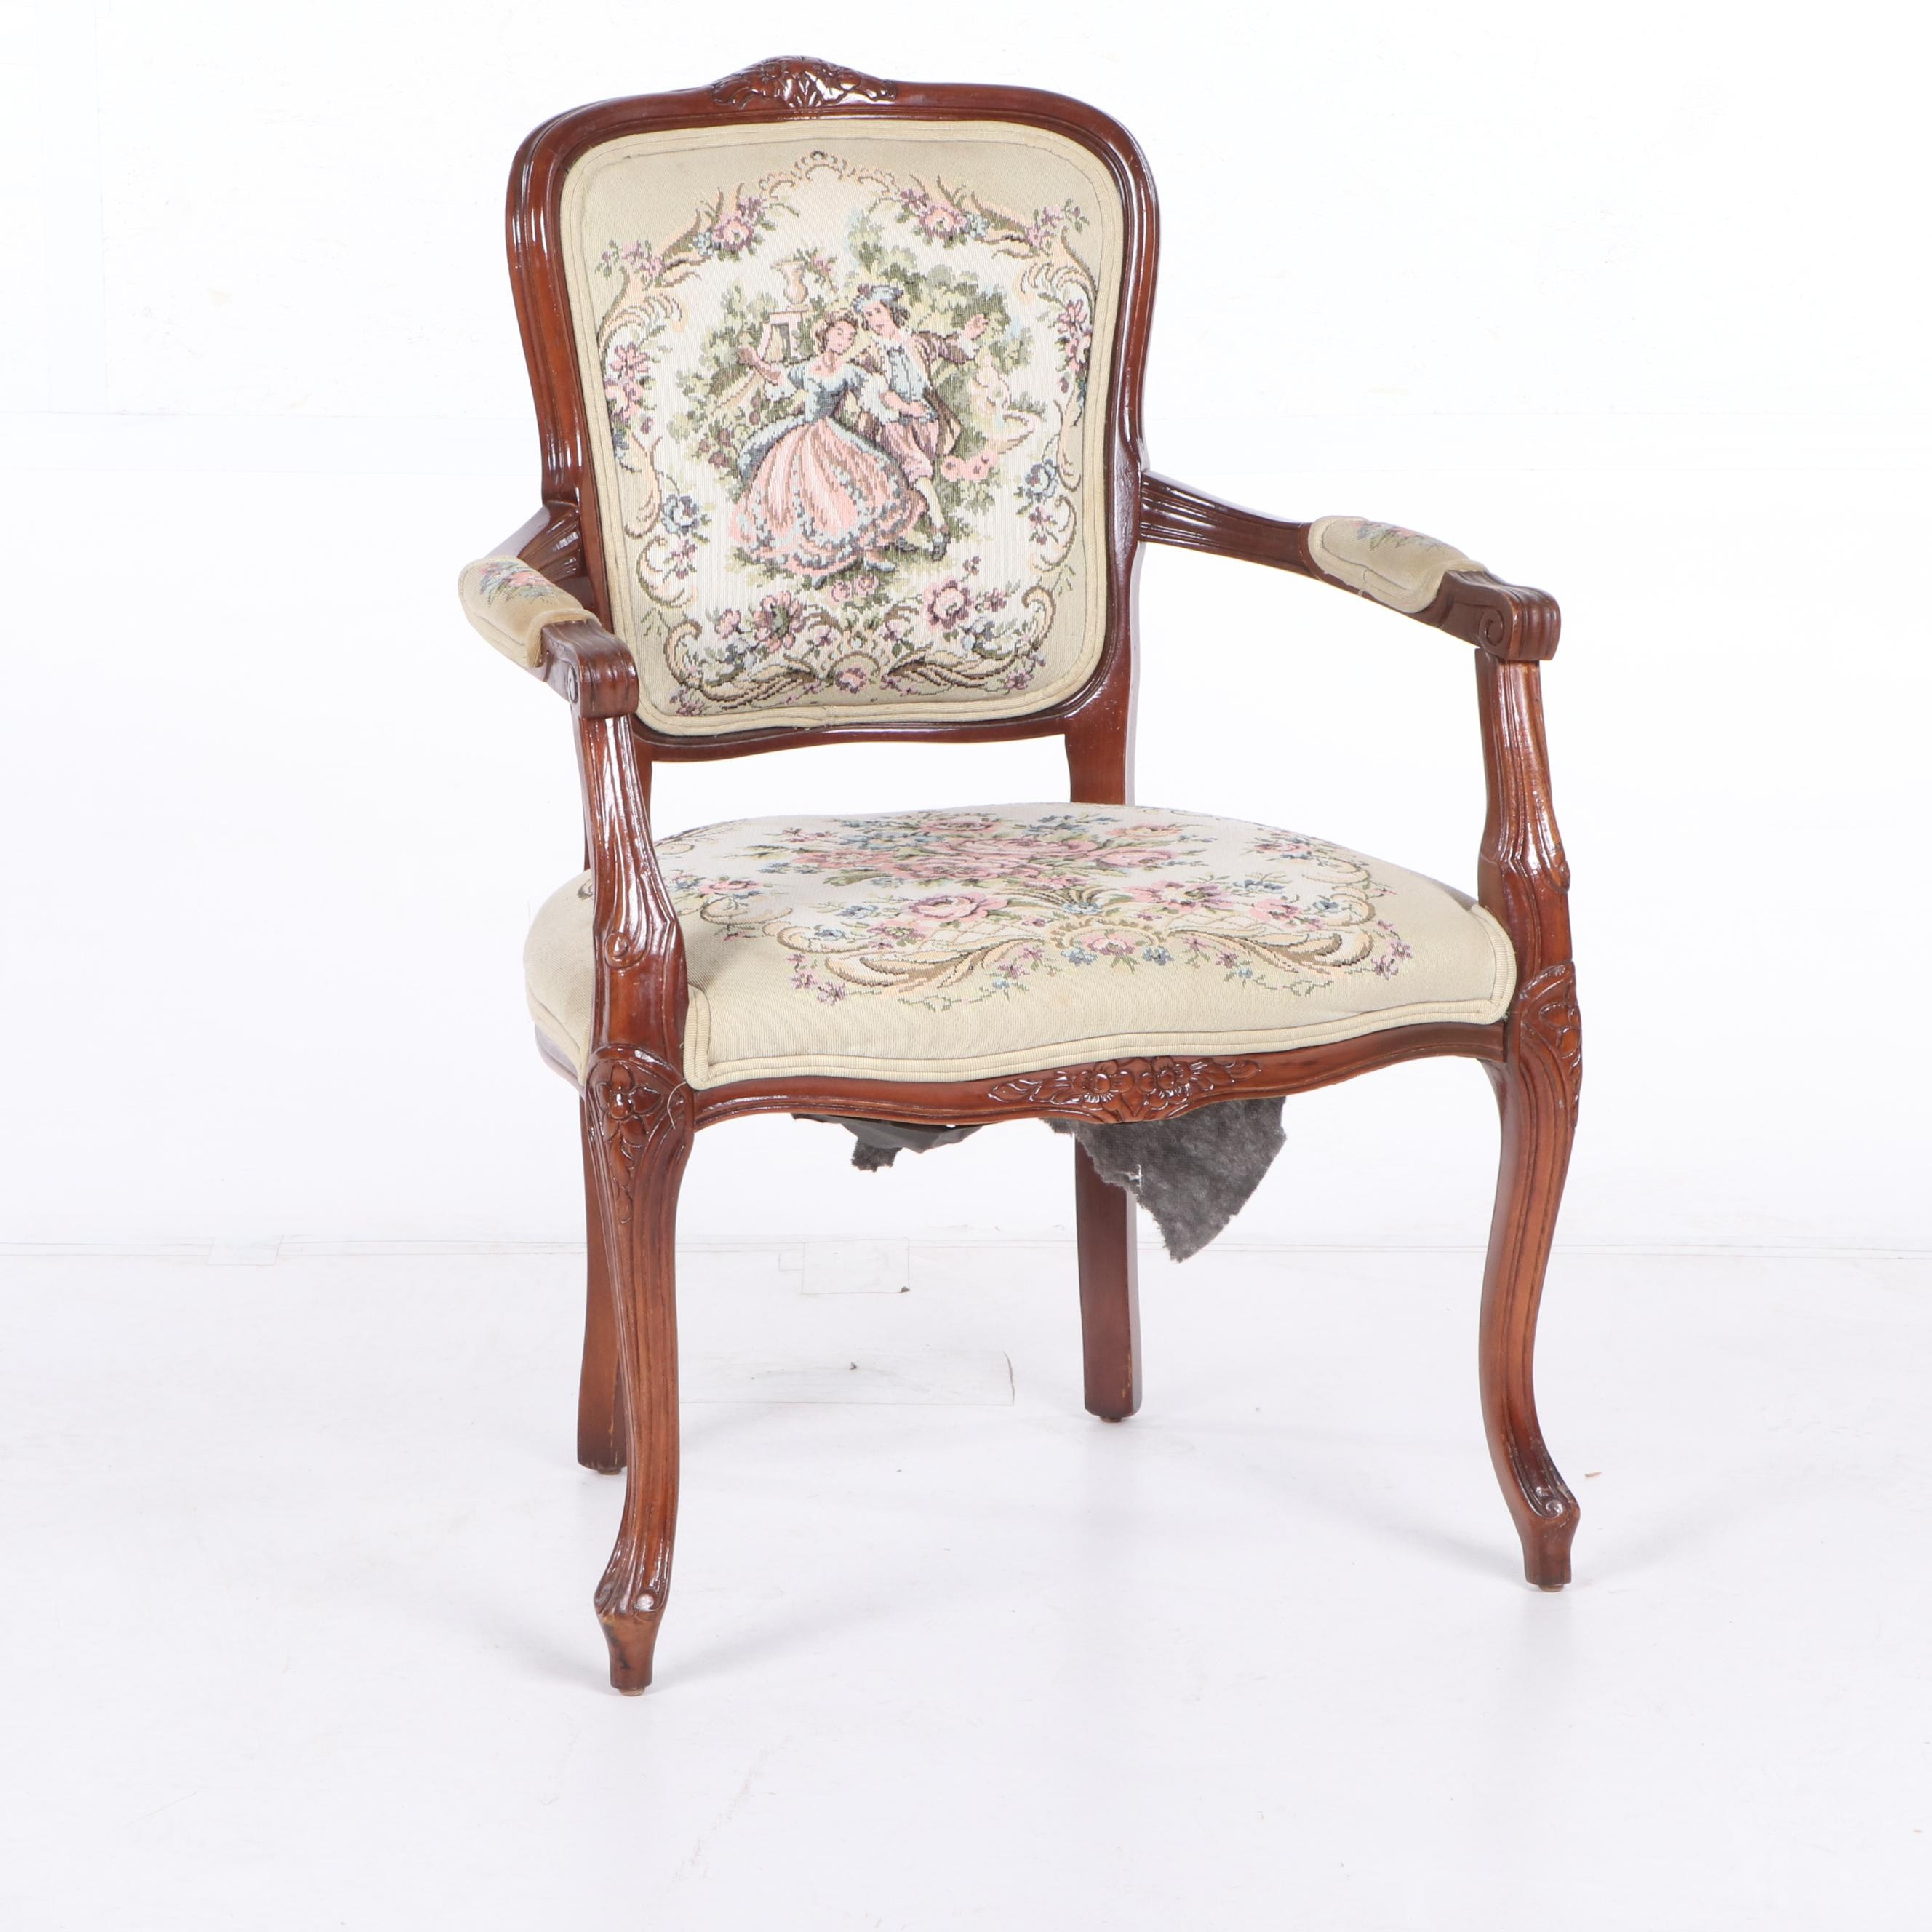 Louis XVI Style Upholstered Armchair, 20th Century